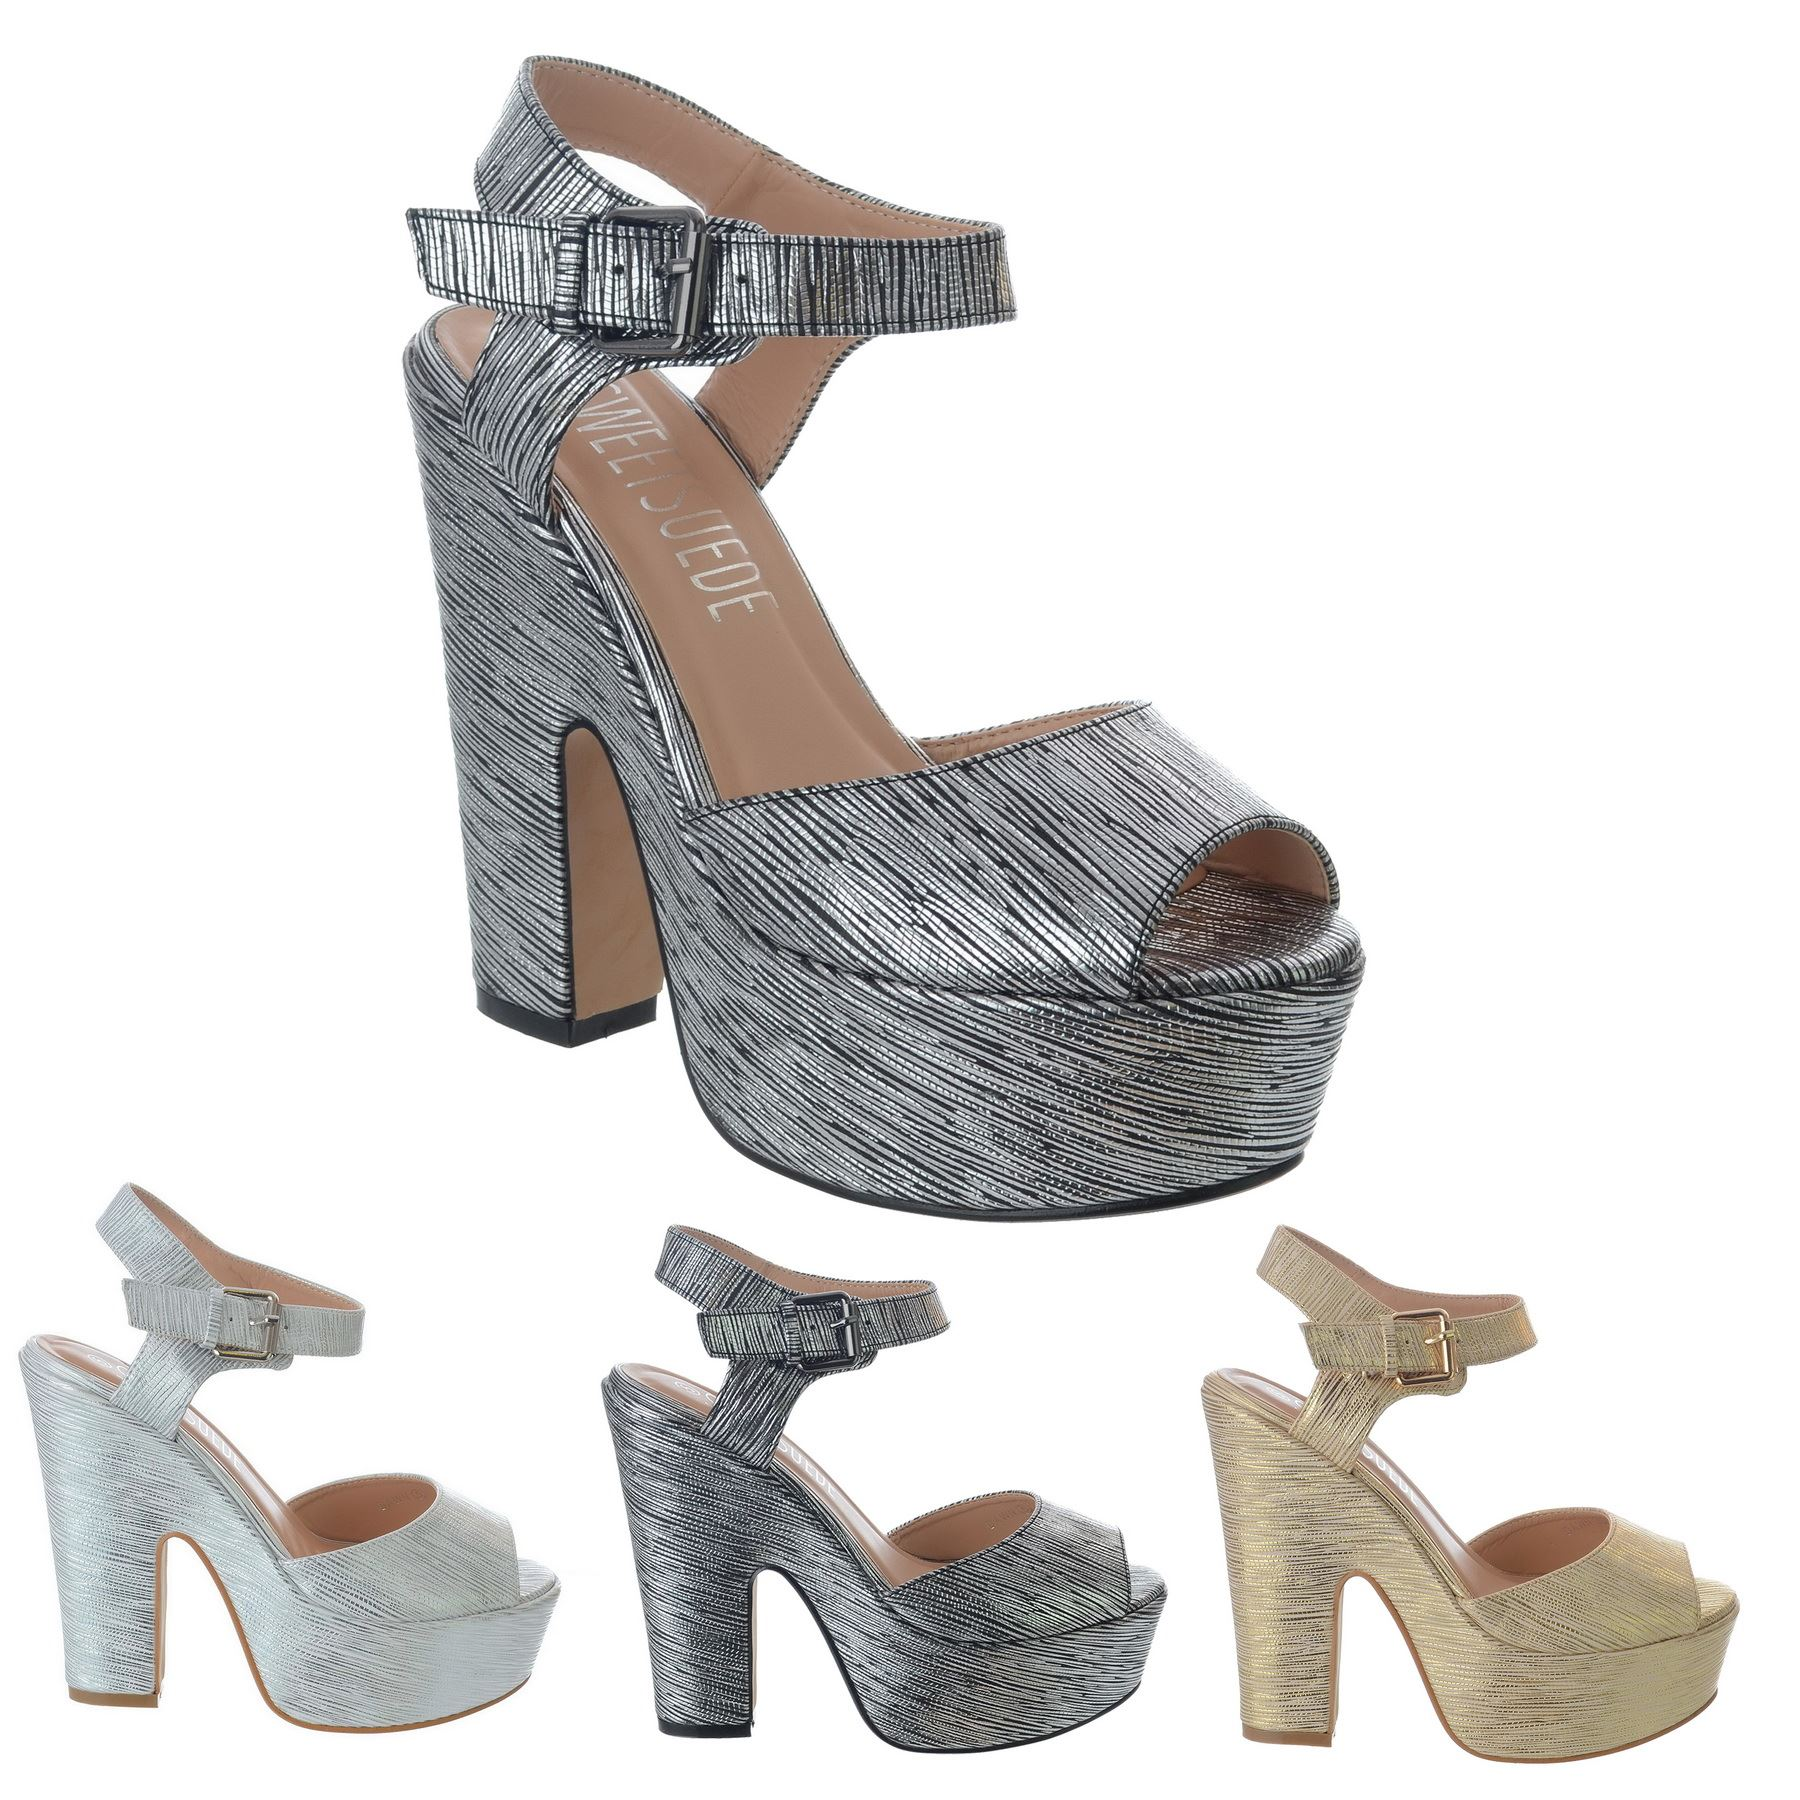 Details about LADIES WOMENS CHUNKY HIGH BLOCK HEEL STRAPPY PLATFORM WEDGE SANDALS SHOES SIZE